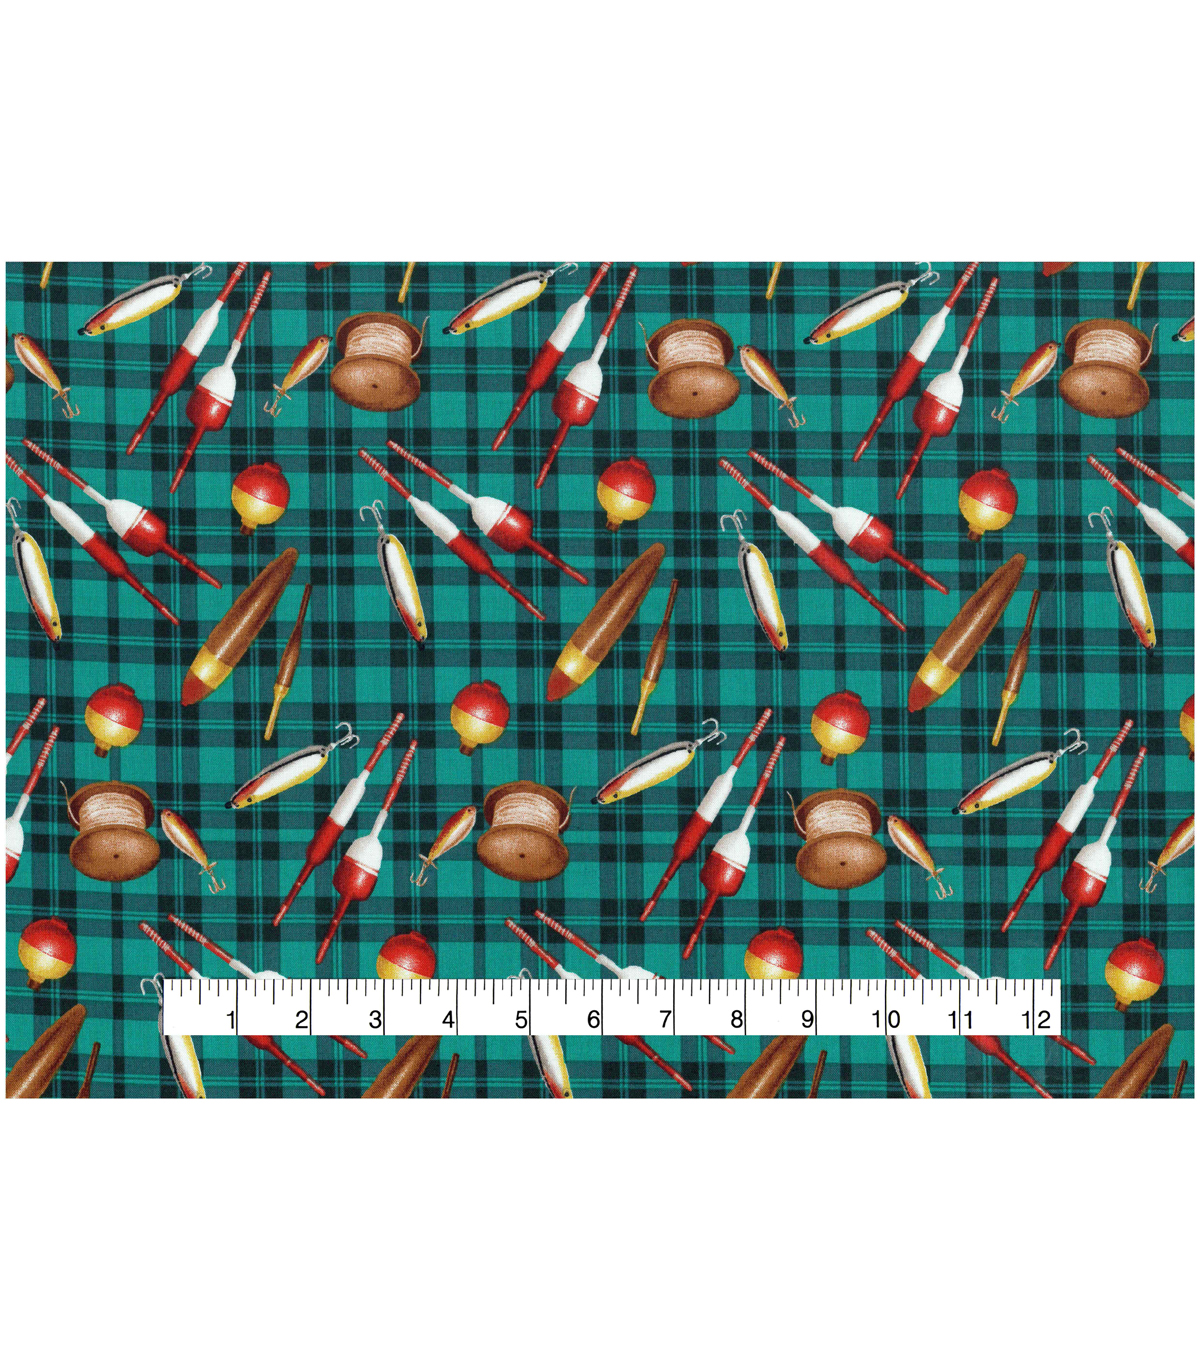 Novelty Cotton Fabric -Fishing Lures On Plaid